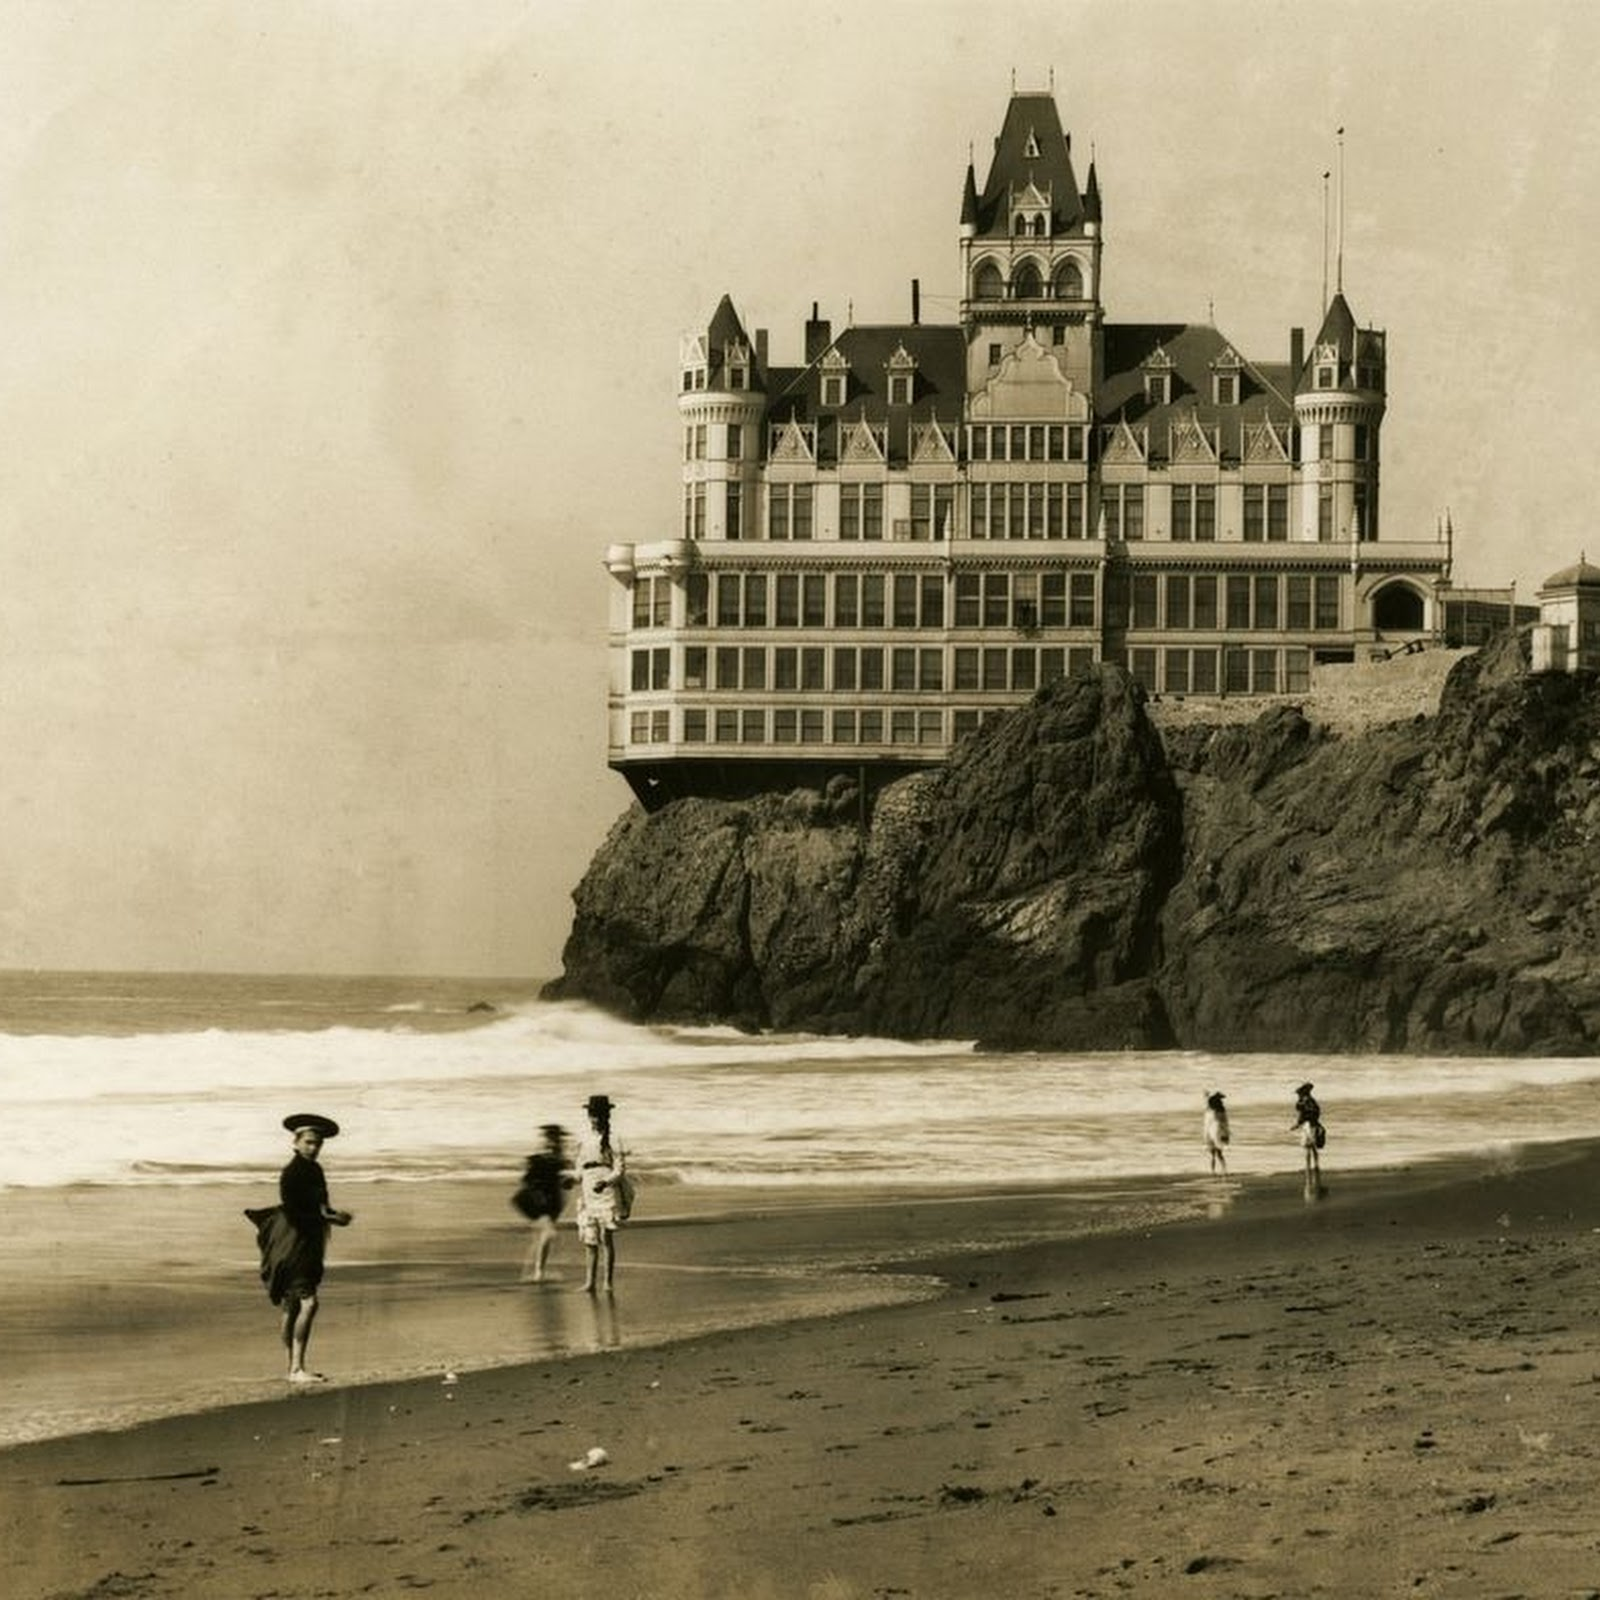 The Cliff House of San Francisco | Amusing Planet